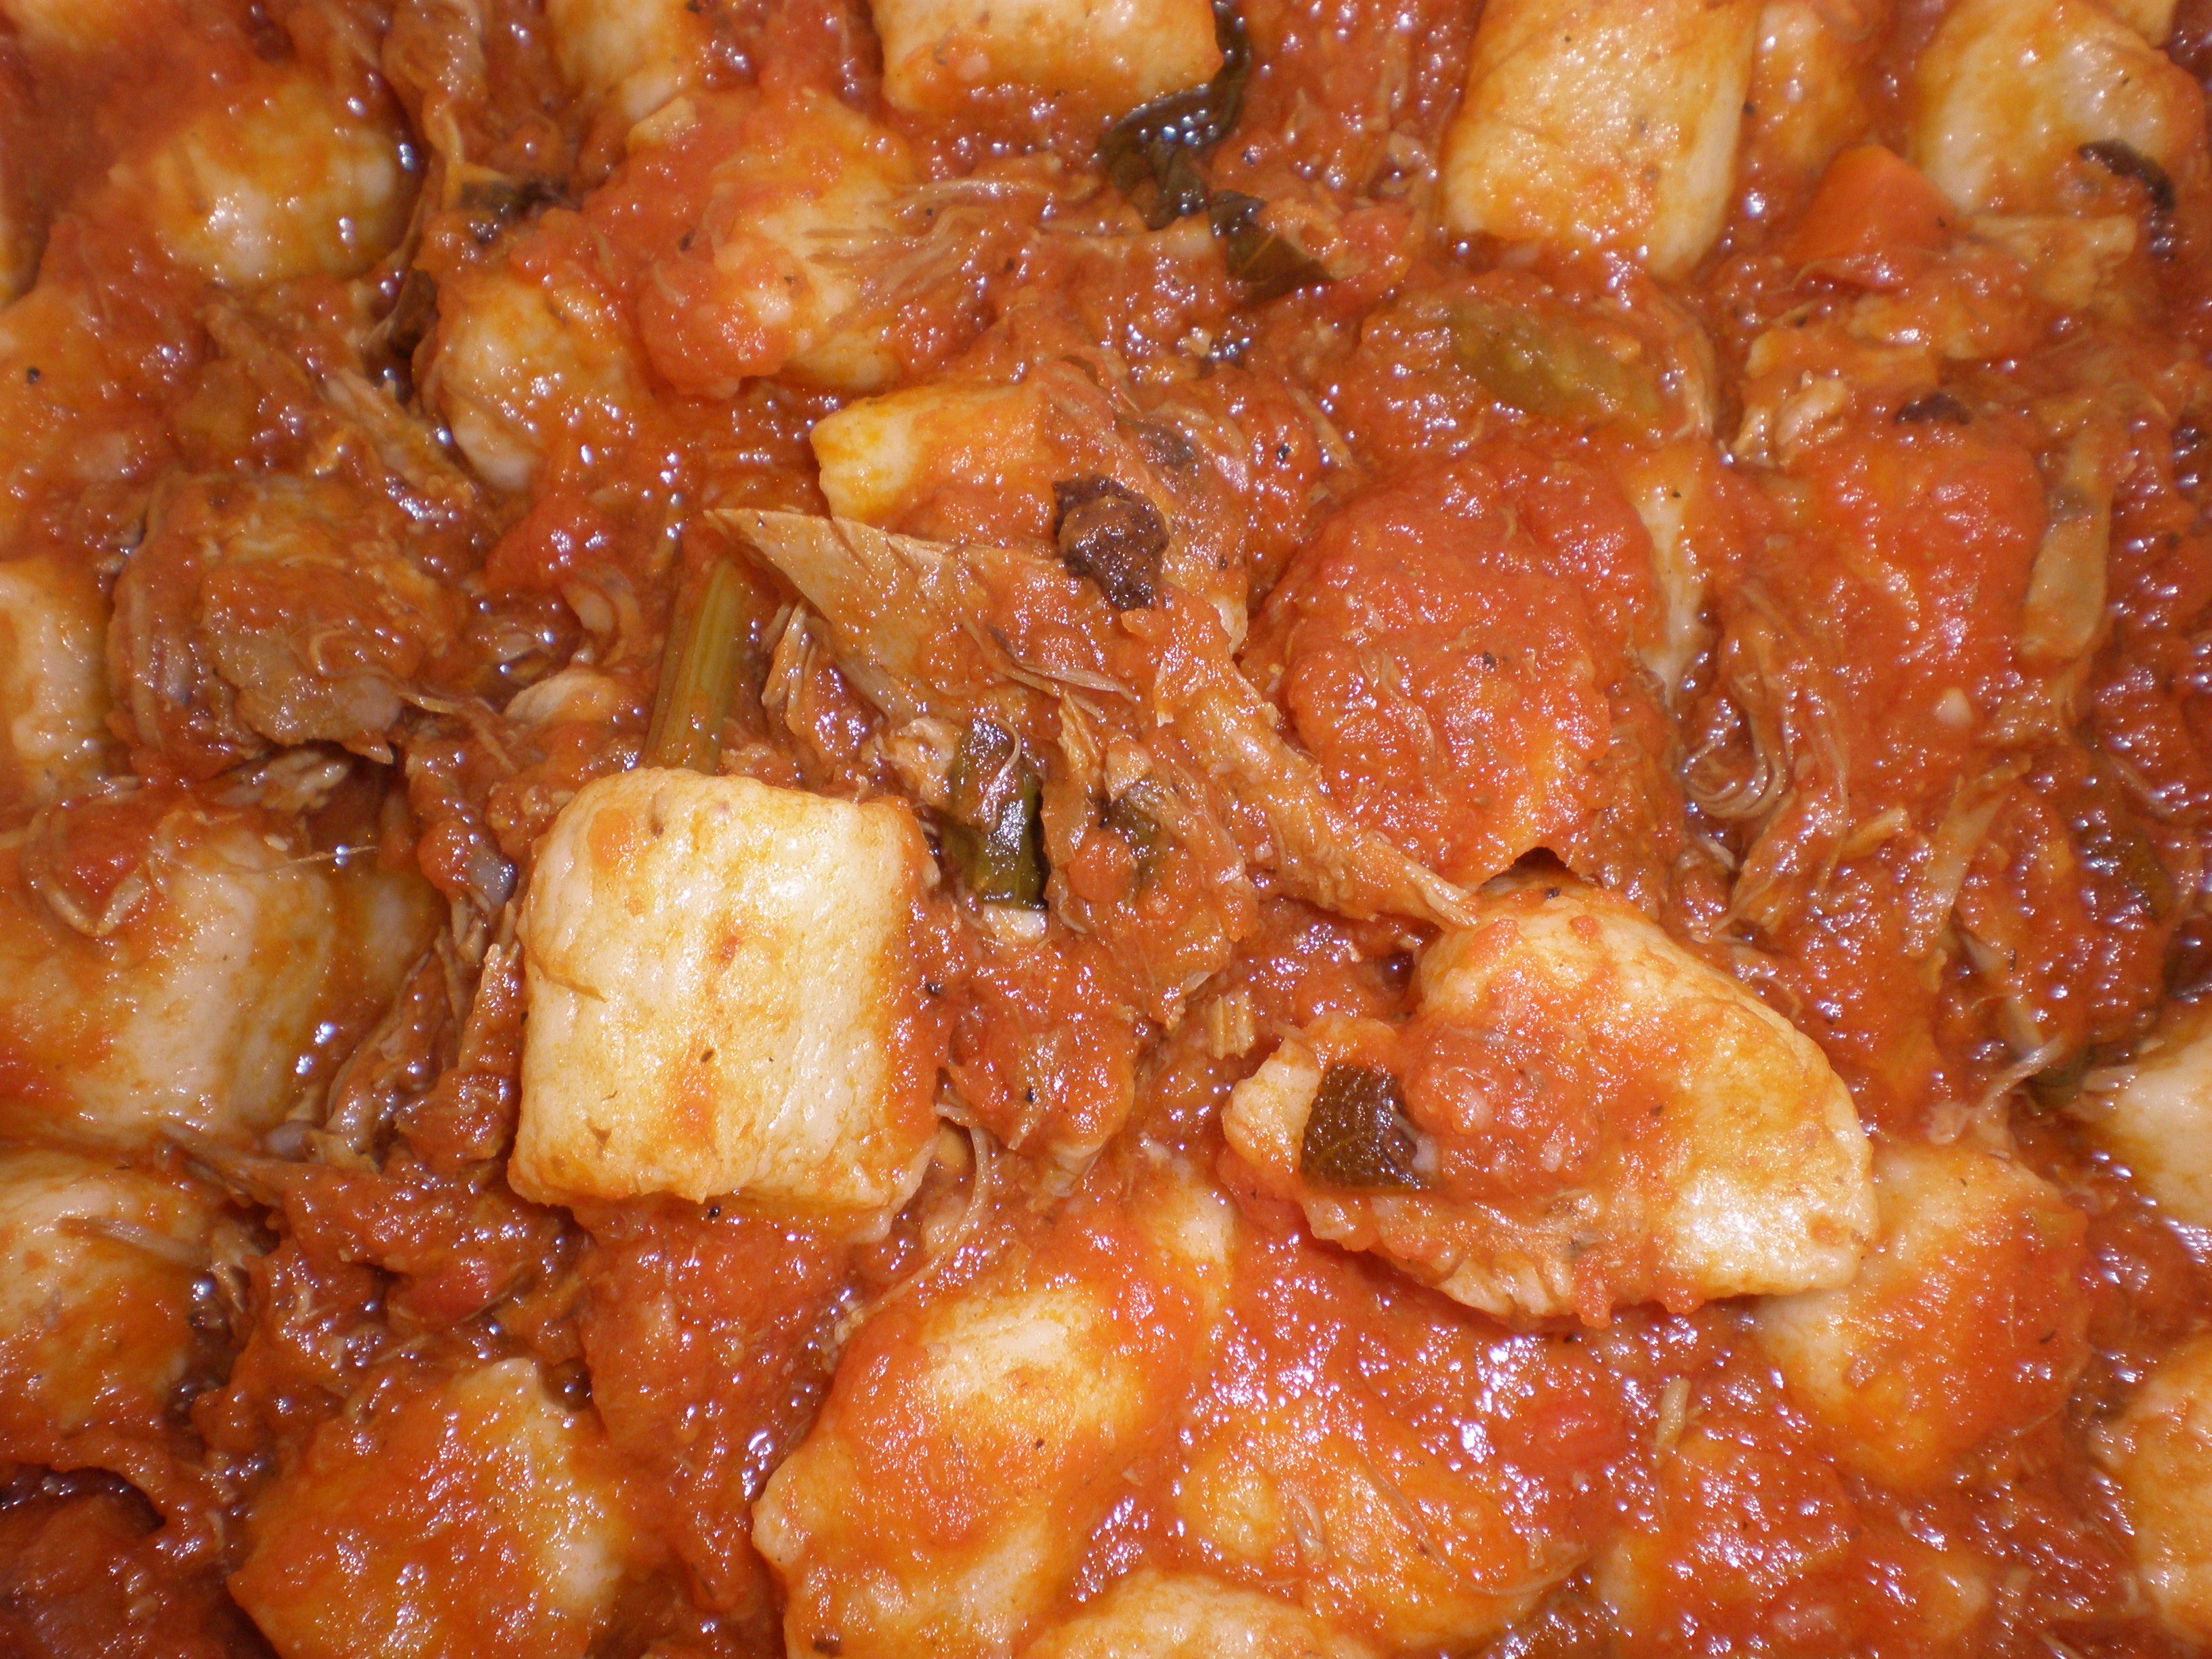 File:Gnocchi with beef and tomato sauce.JPG - Wikimedia Commons